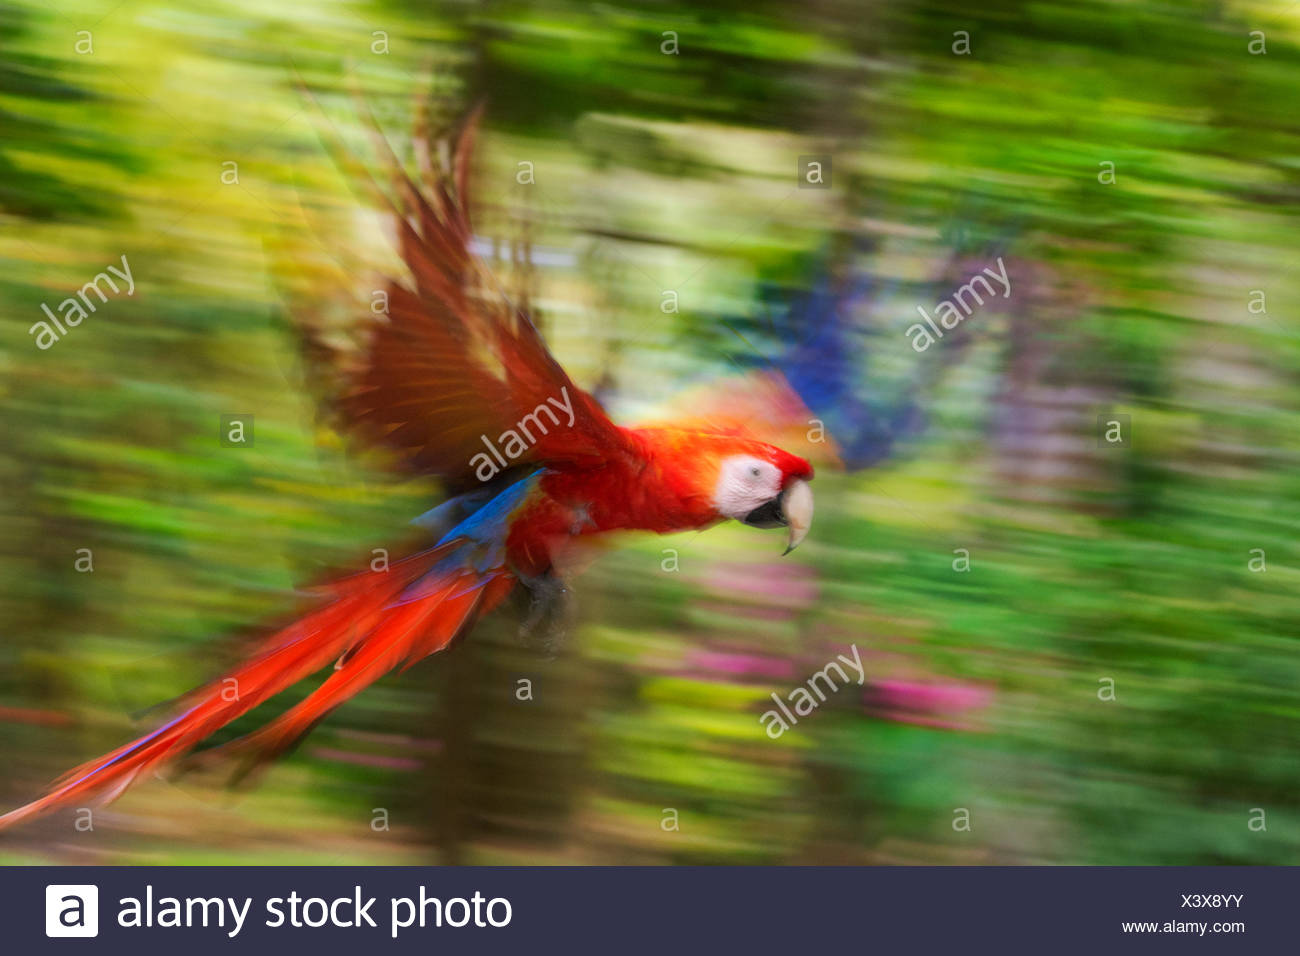 Scarlet macaw (Ara macao) flying, blurred motion. Costa Rica. - Stock Image